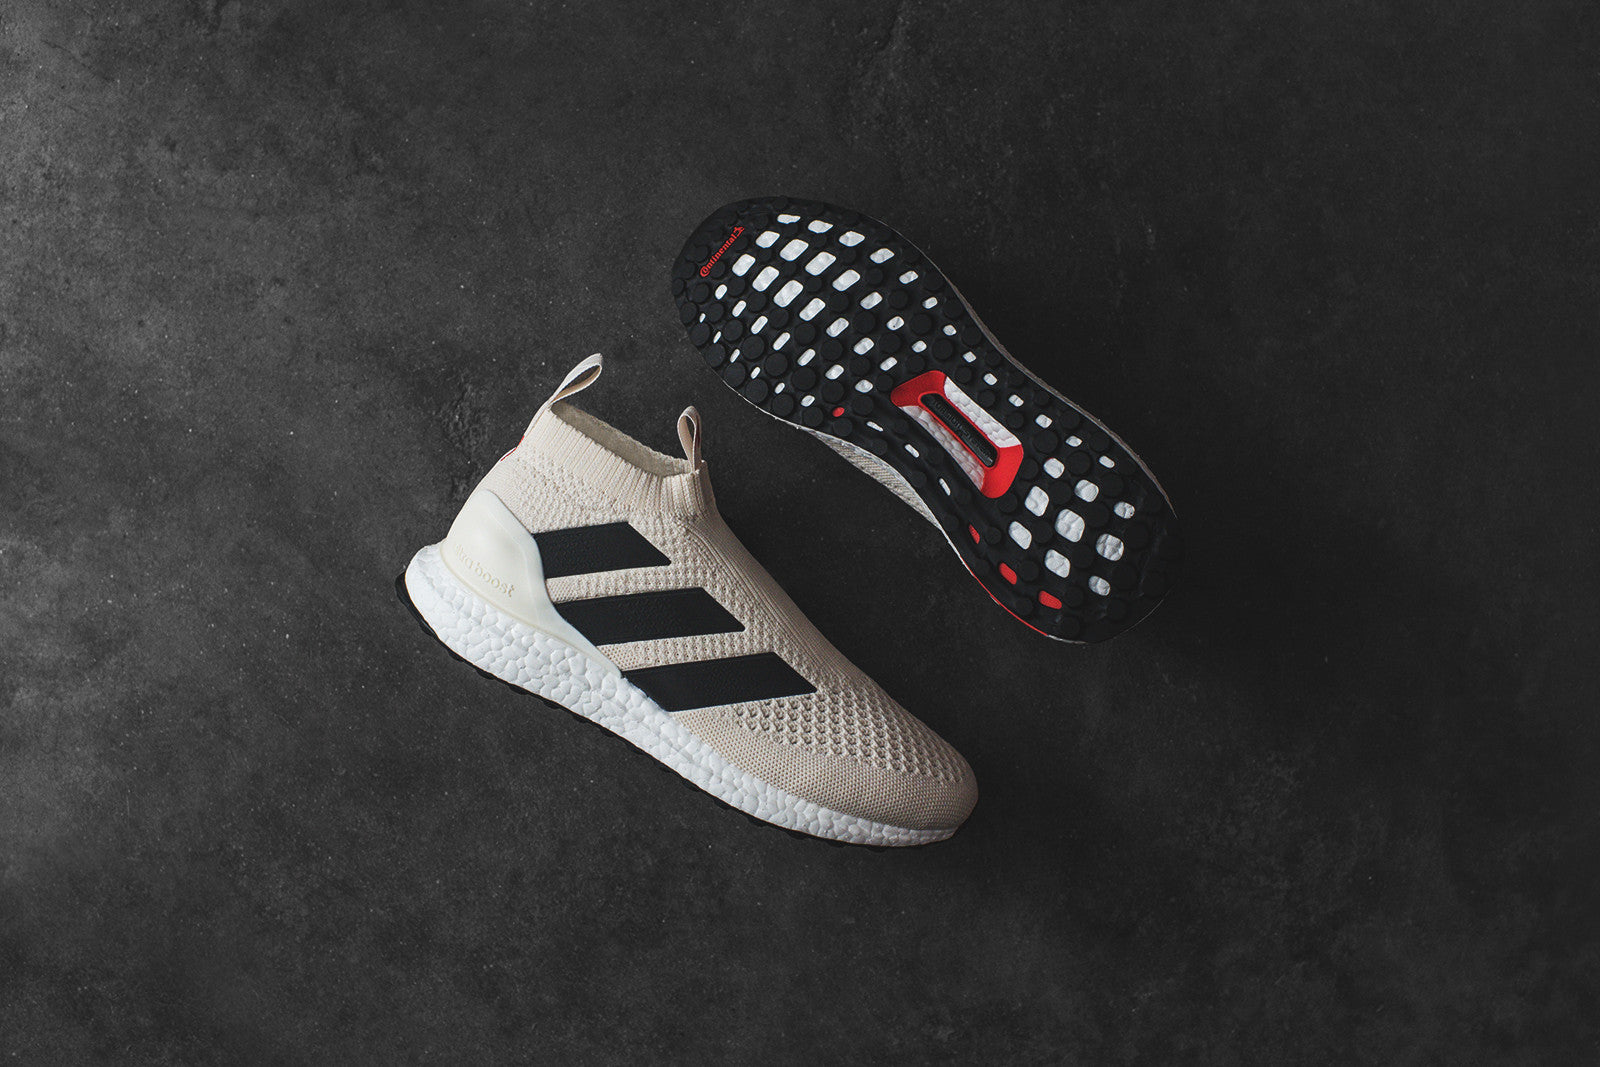 adidas ace 17 purecontrol ultra boost red white